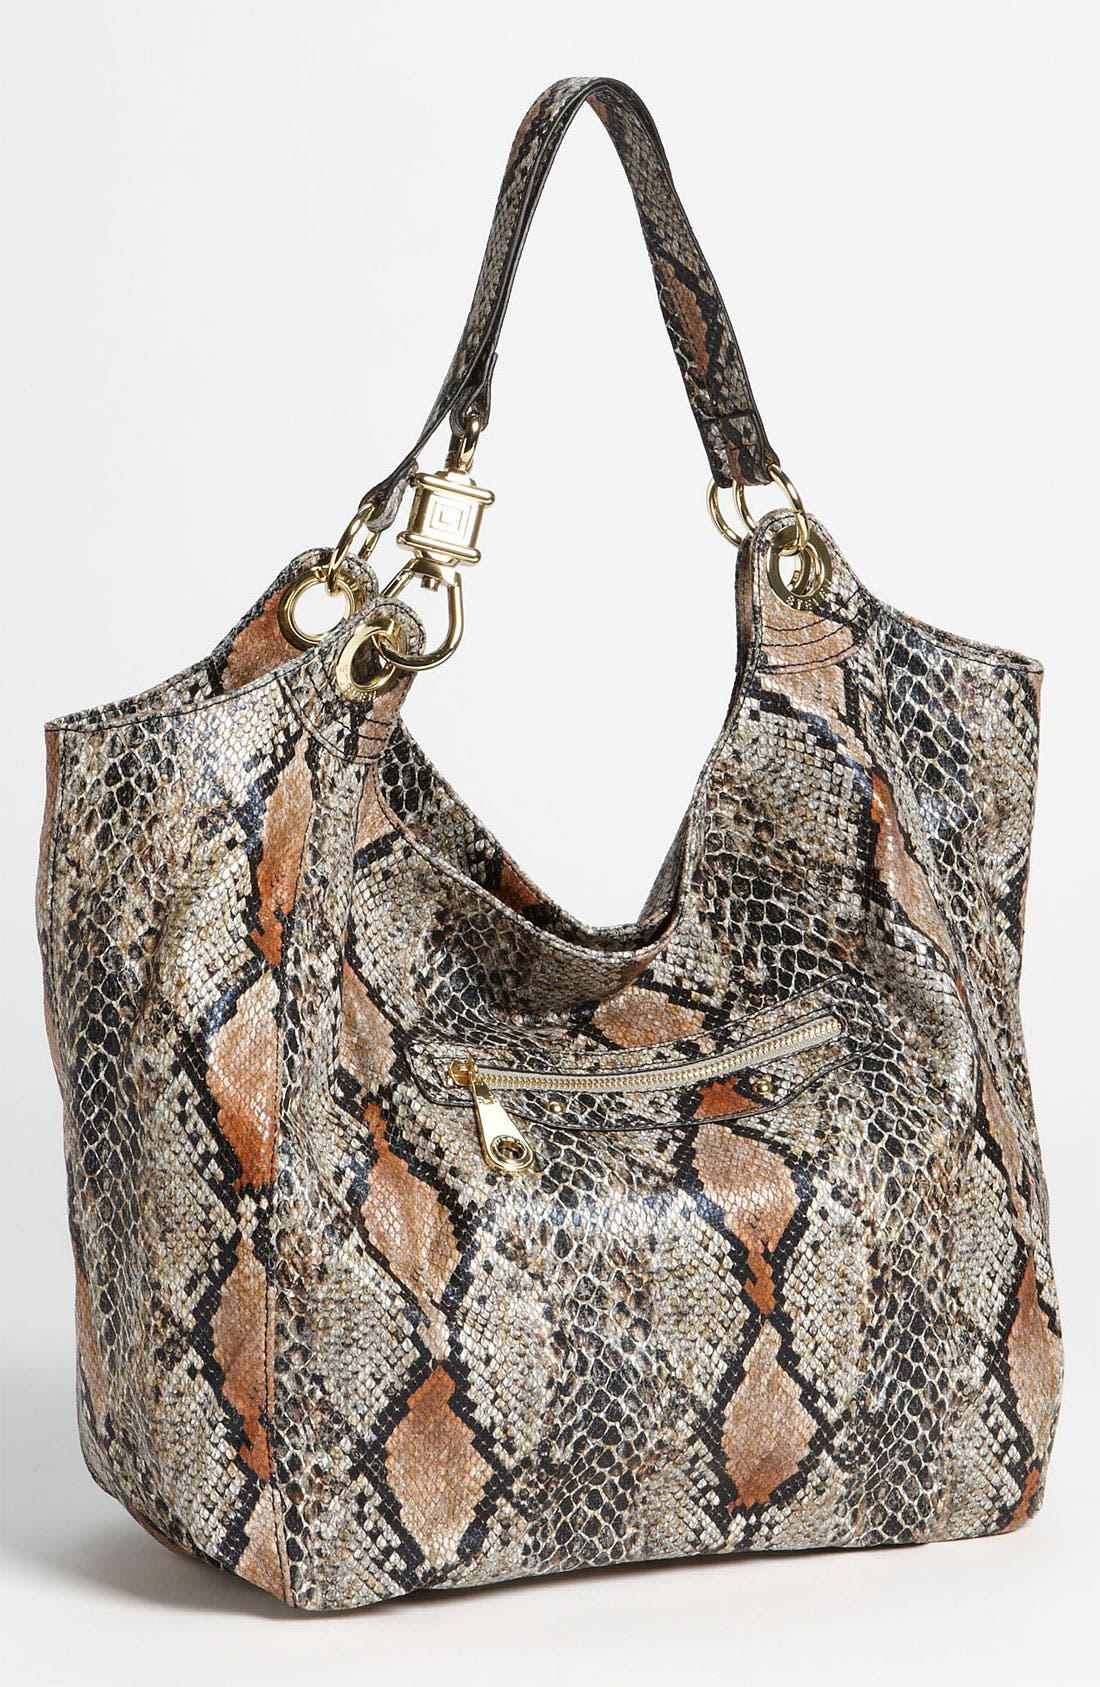 Main Image - Steven by Steve Madden 'Sugar' Tote